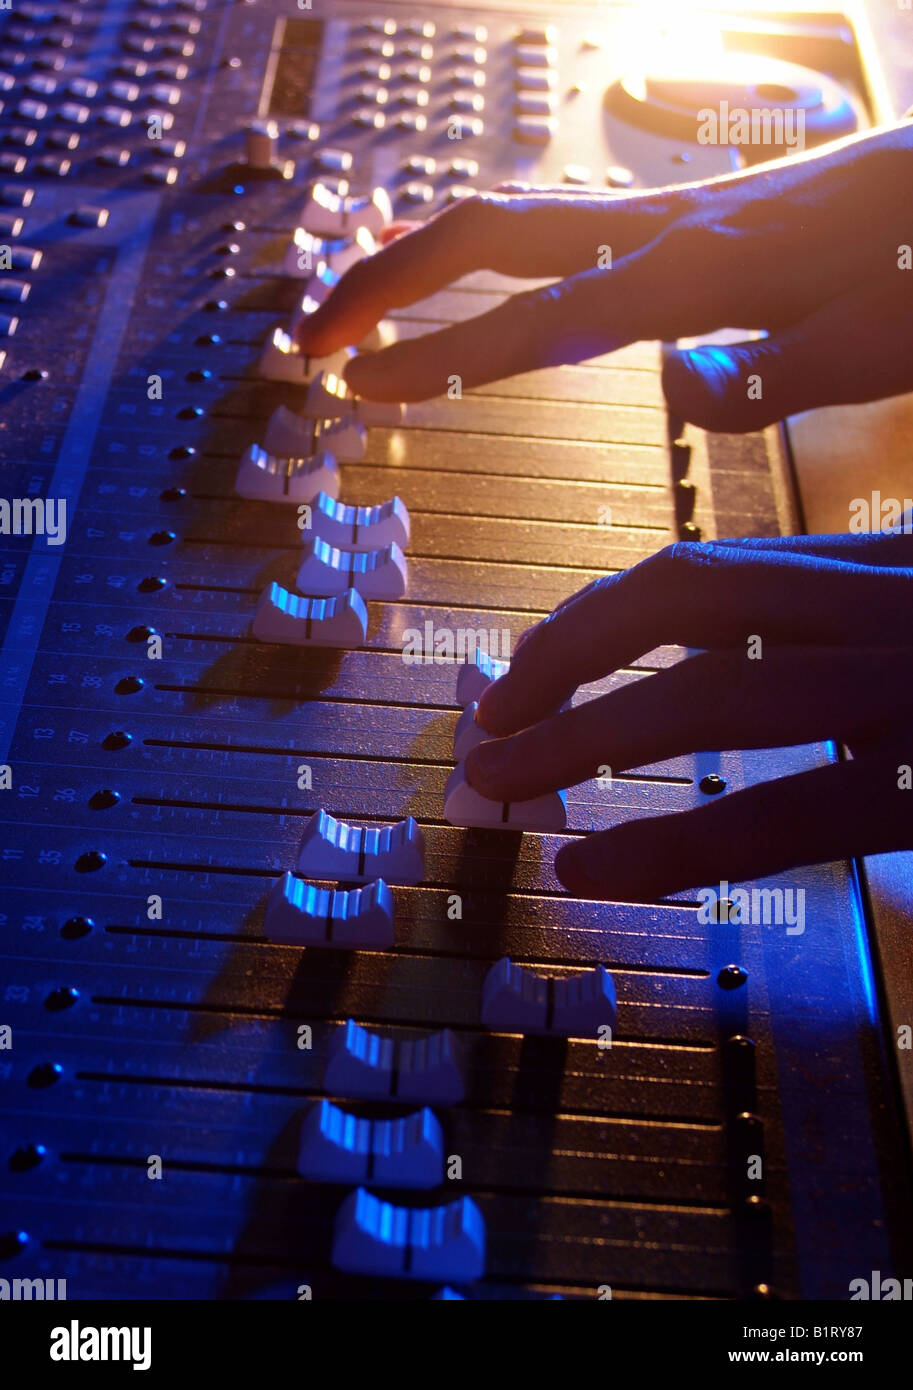 Hands of a sound engineer adjusting the regulators of a professional mixer unit Stock Photo